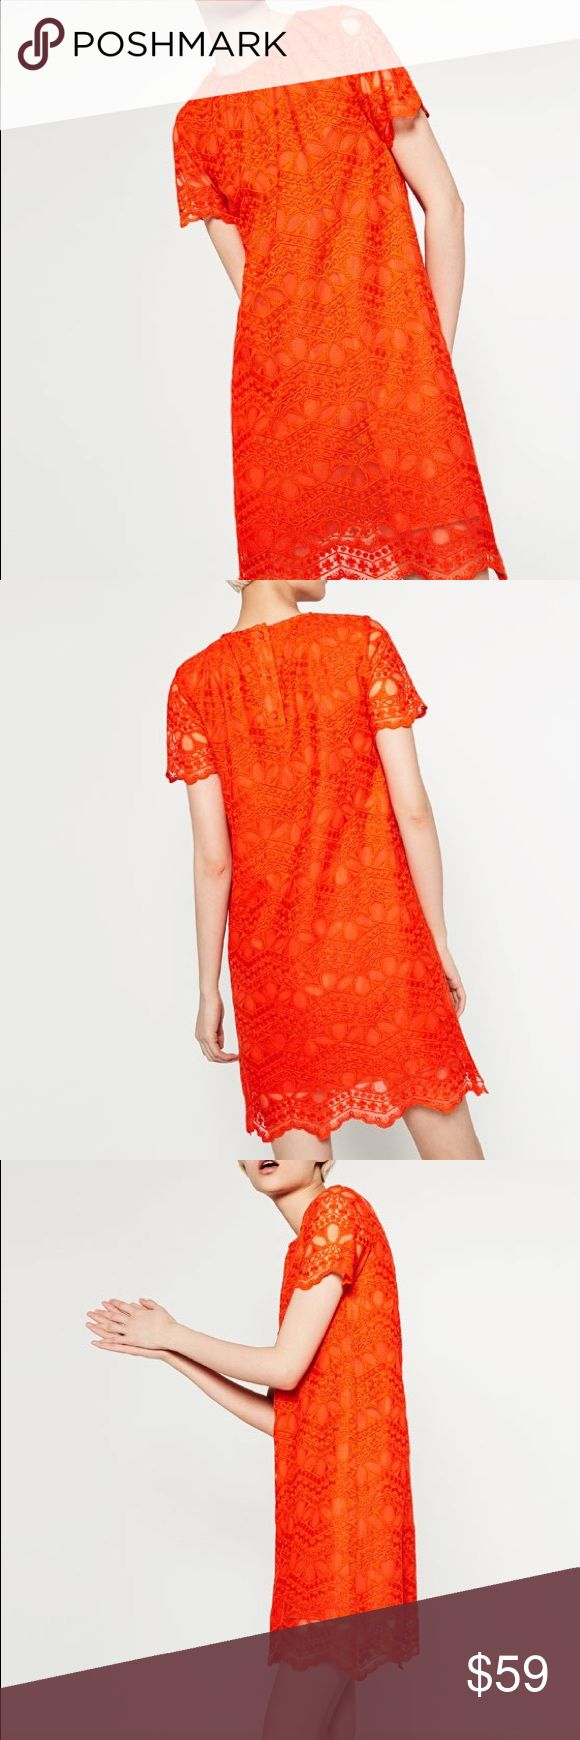 Orange lace dress Scalloped edge... short sleeve.. pretty lace pattern in a vibrant color.. fits about size 6 Zara Dresses Mini